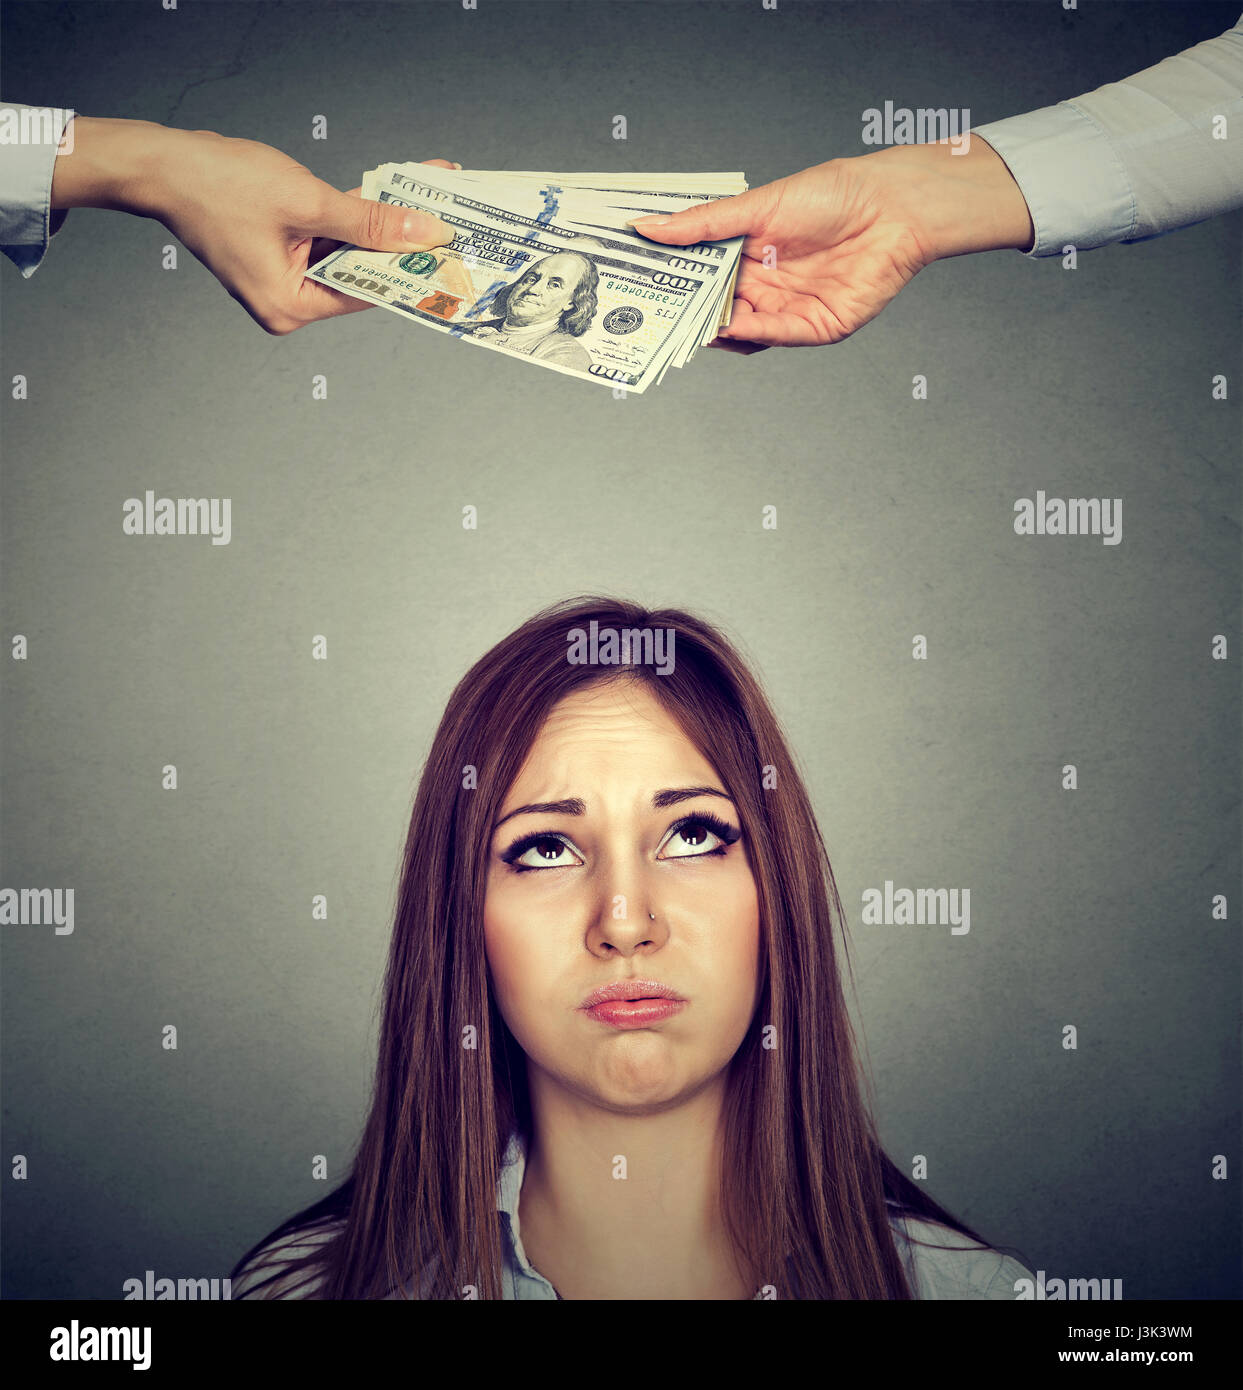 Upset worried sad woman looking up at two hands exchanging money - Stock Image